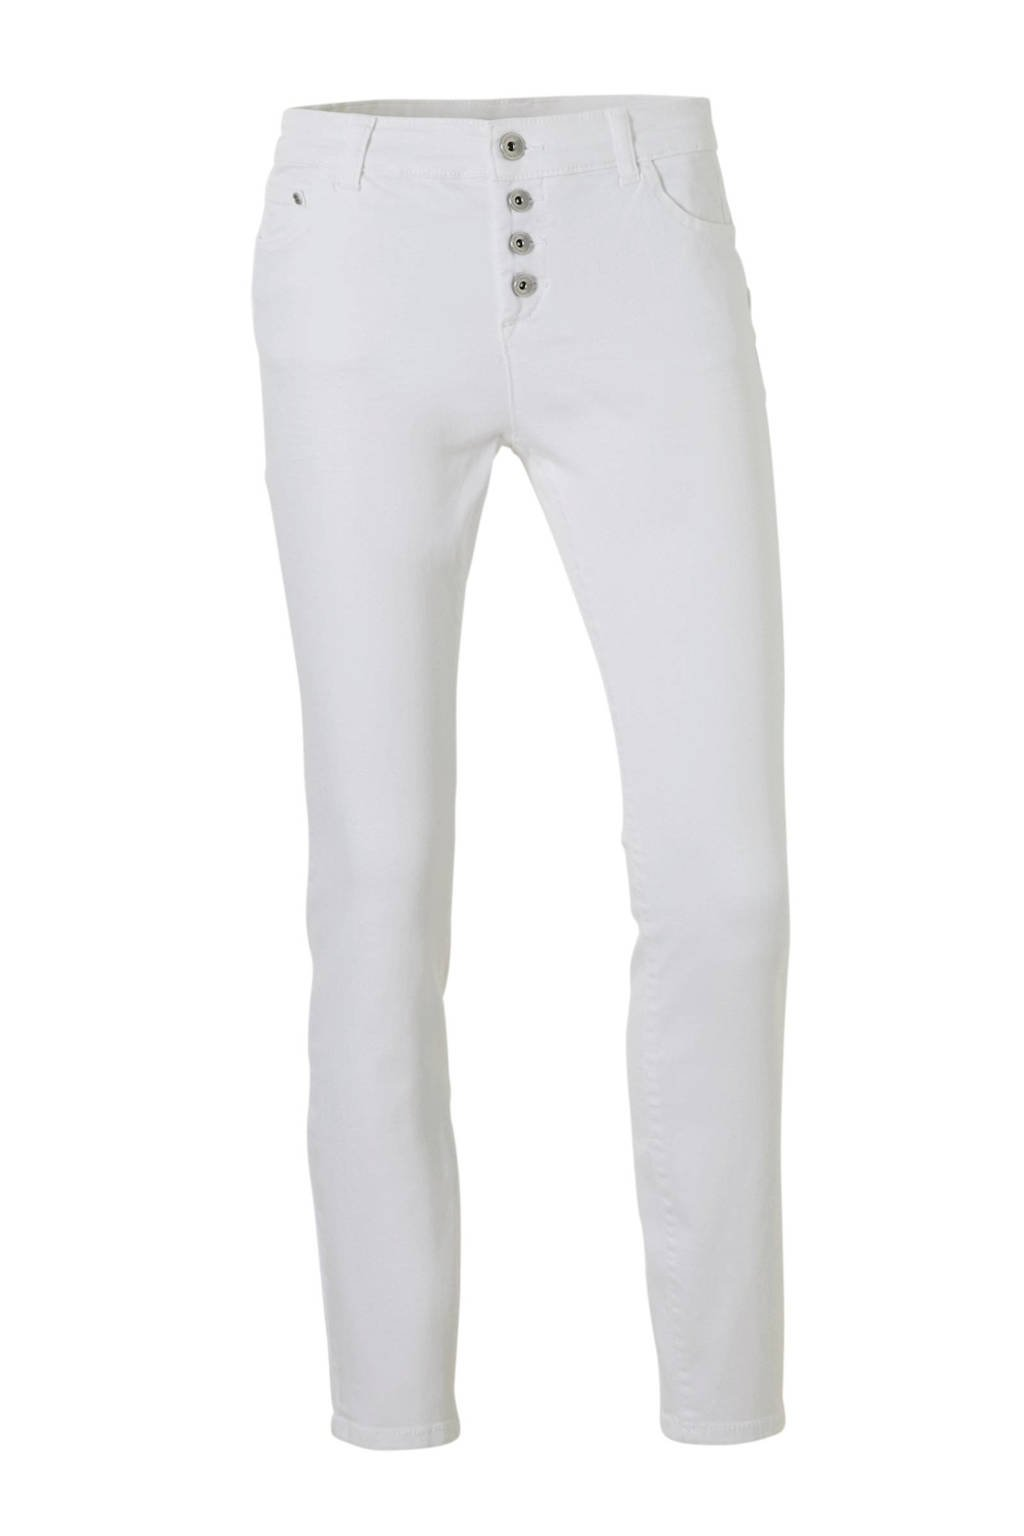 C&A Yessica push up broek wit, Wit